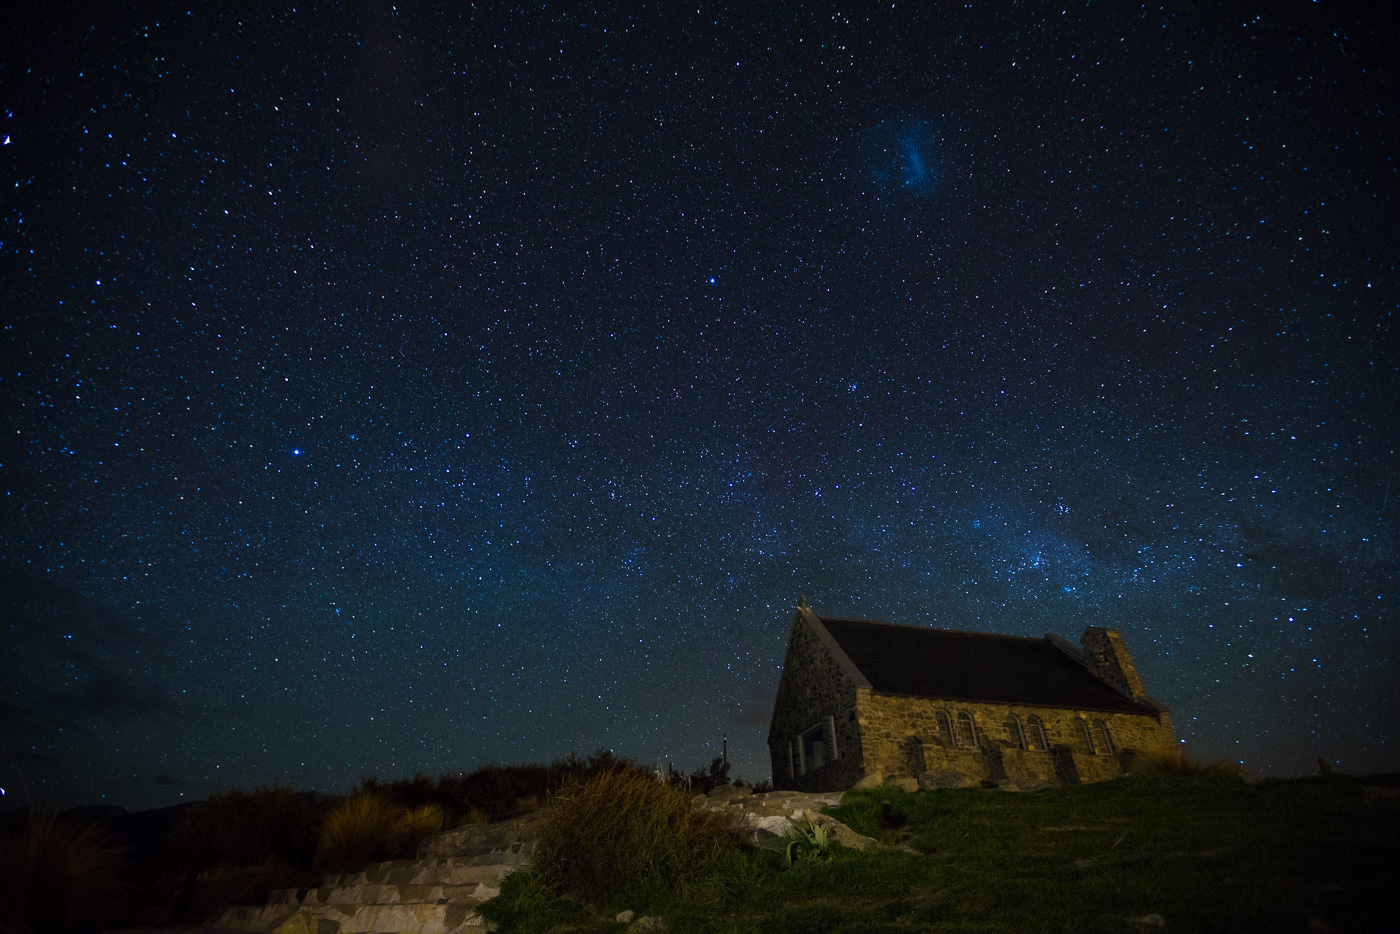 Another view of the Church of the Good Shepherd, Lake Tekapo